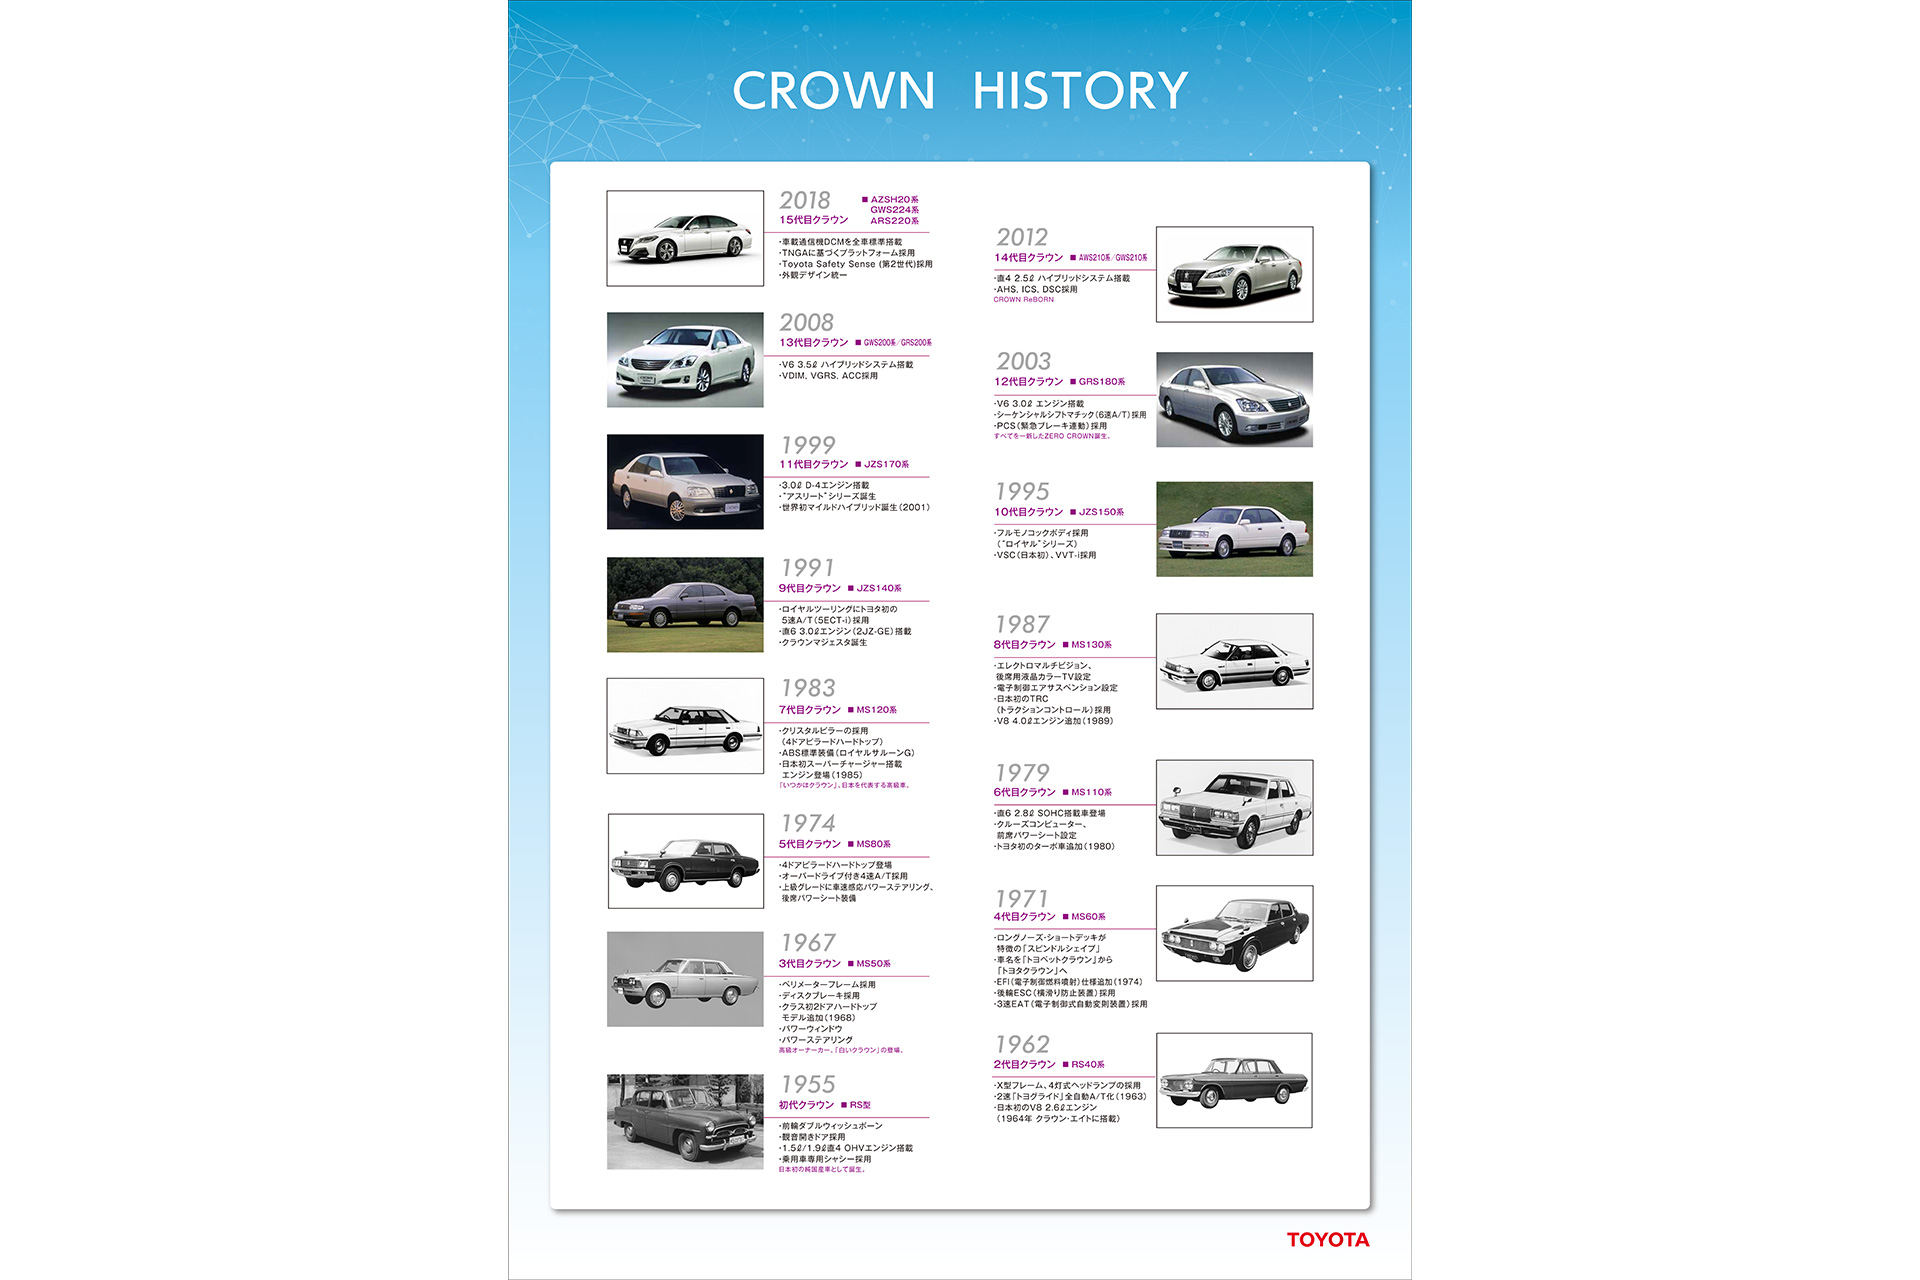 CROWN HISTORY